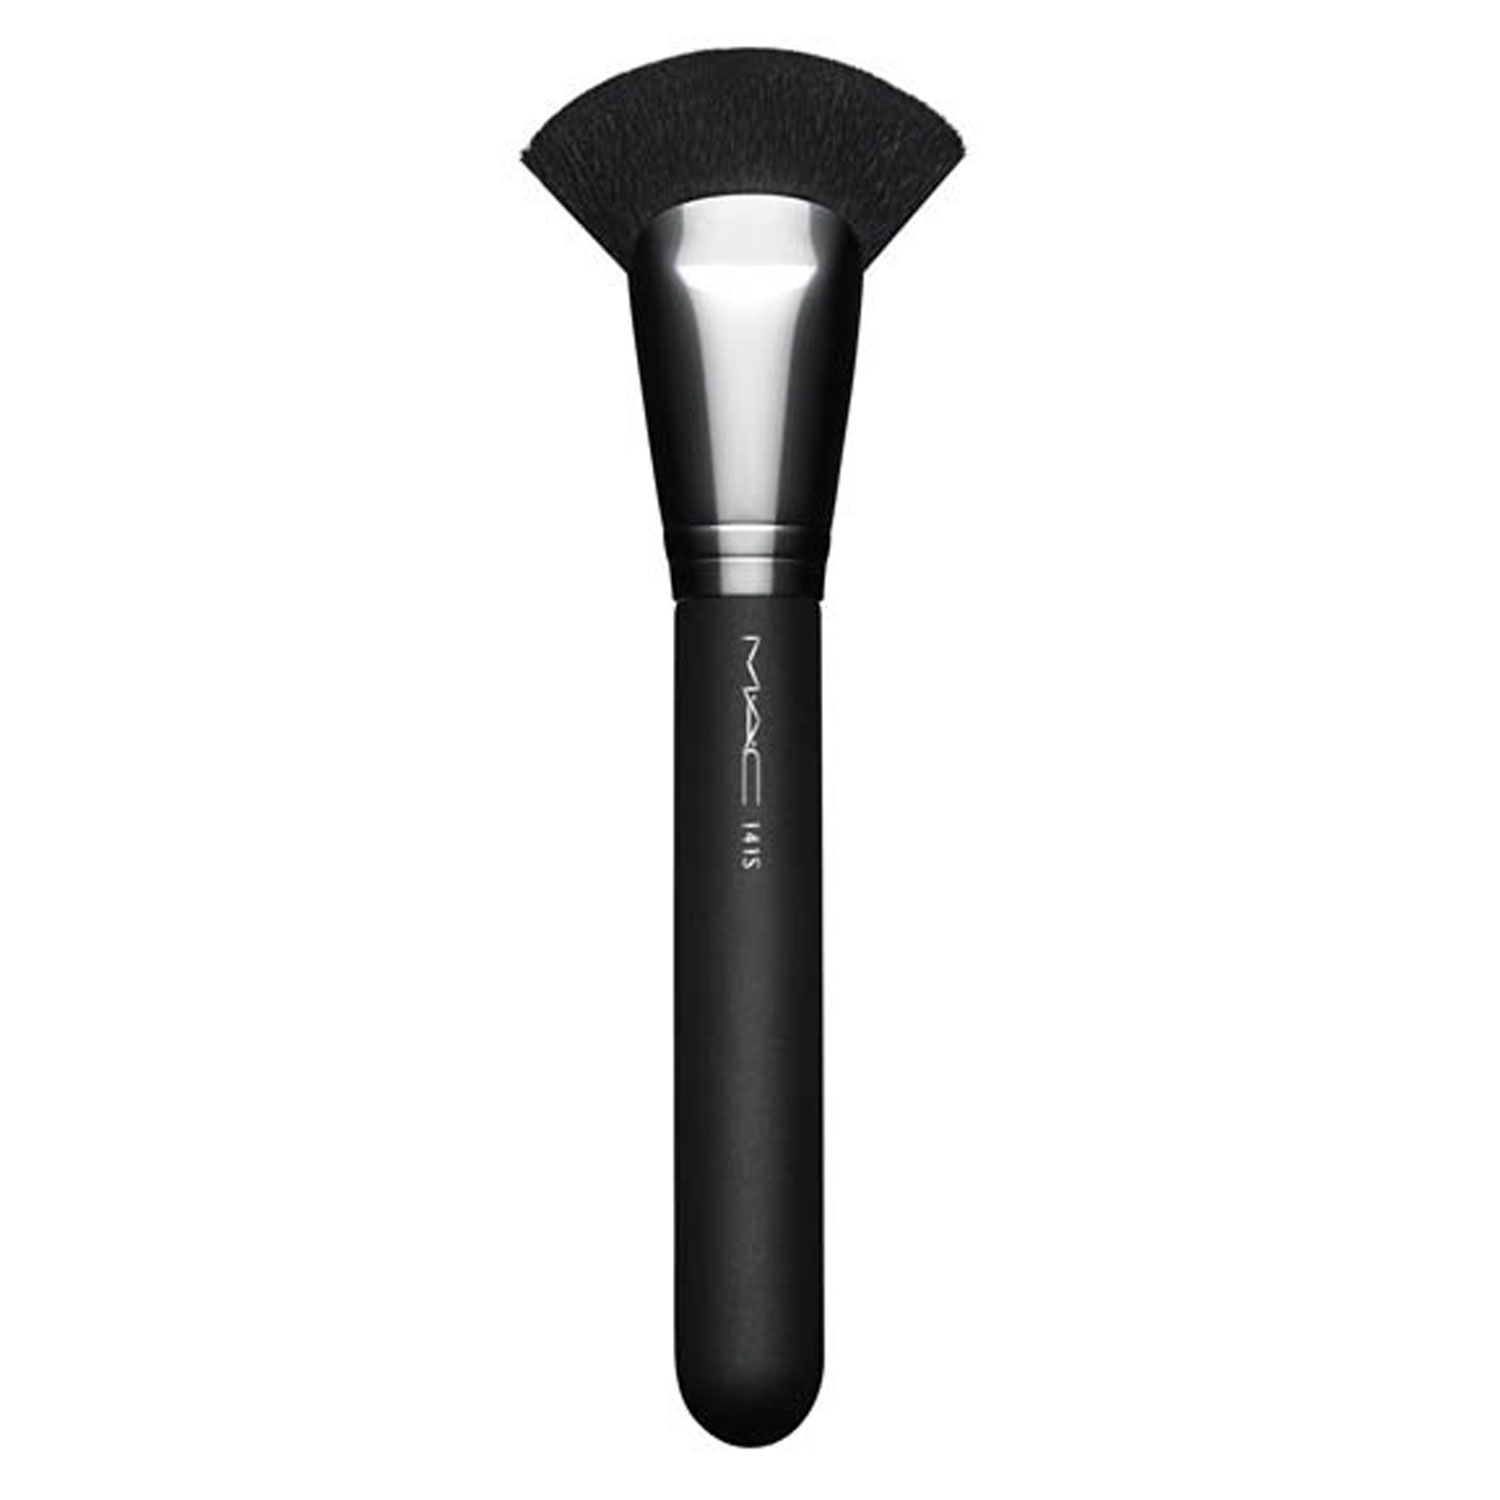 M·A·C Tools - Synthetic Face Fan Brush 141S